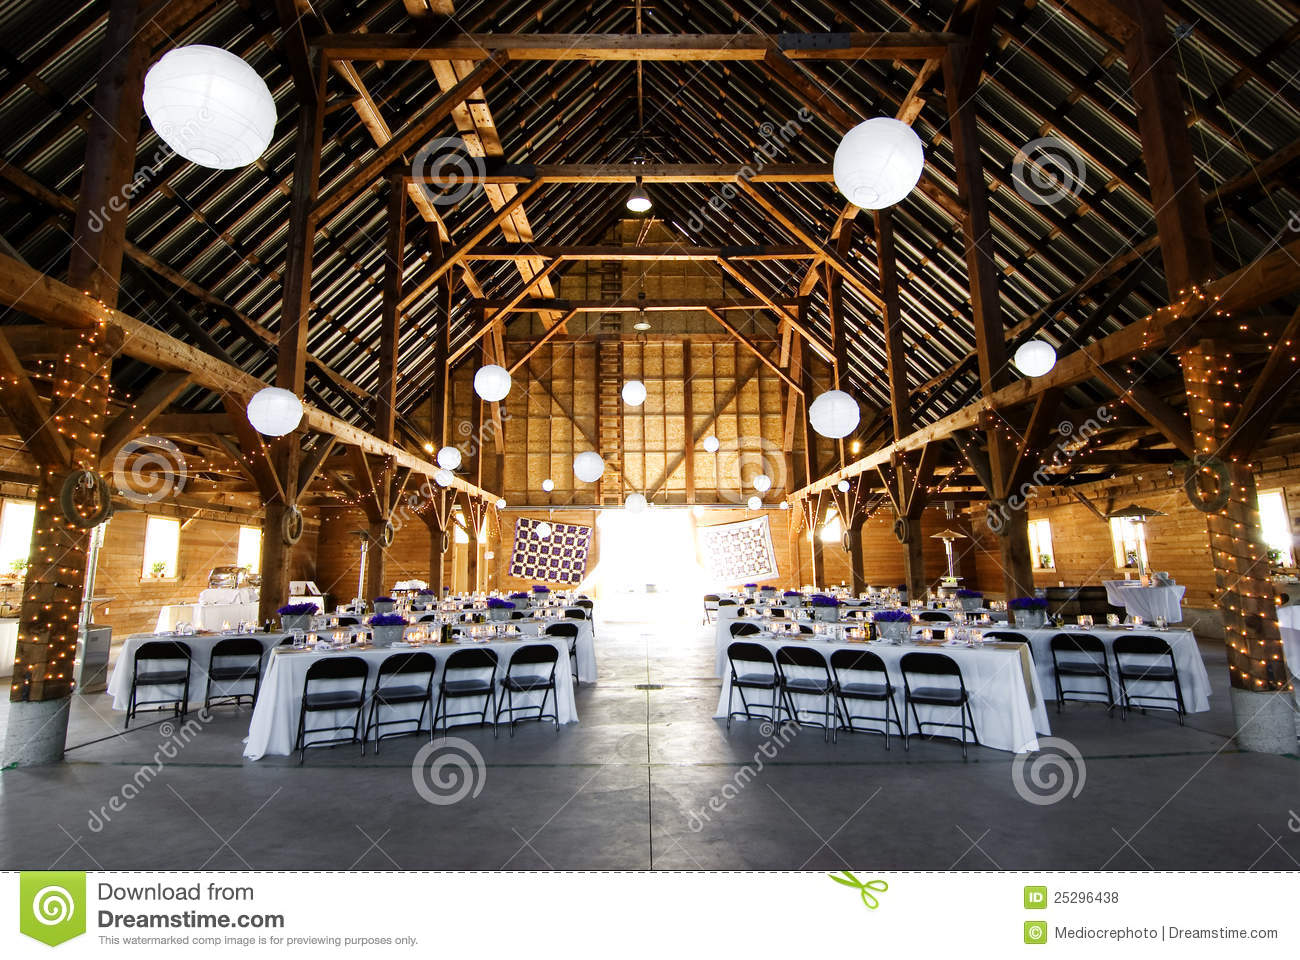 Indoor Wedding Venue Royalty Free Stock Photo: Wedding Reception At Barn Stock Photo. Image Of